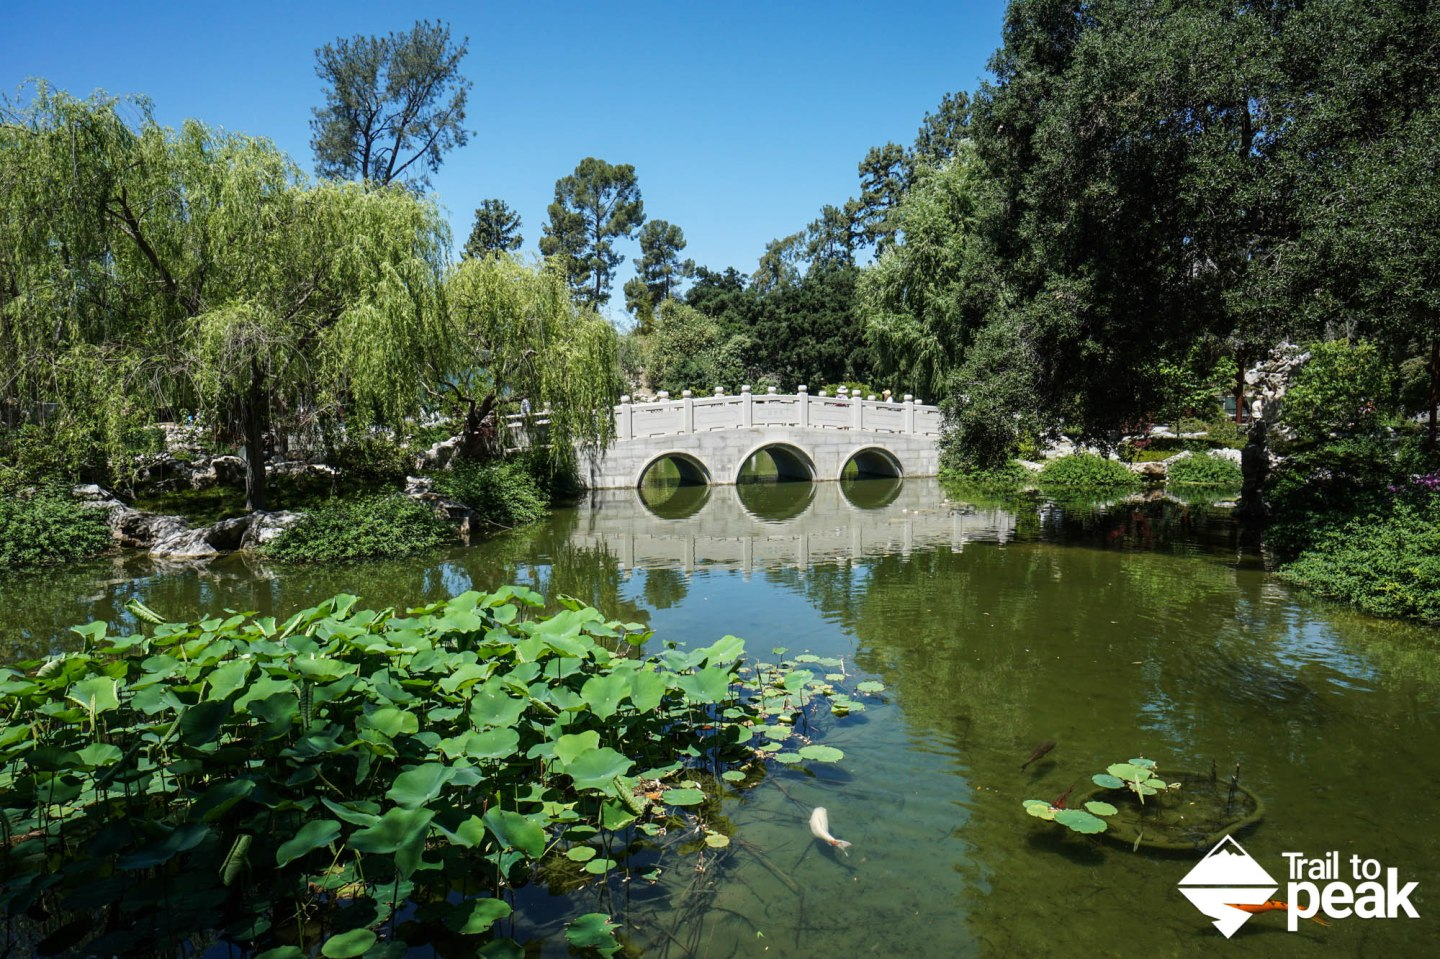 A Guide To The Huntington Botanical Gardens, Library, And Art Collections